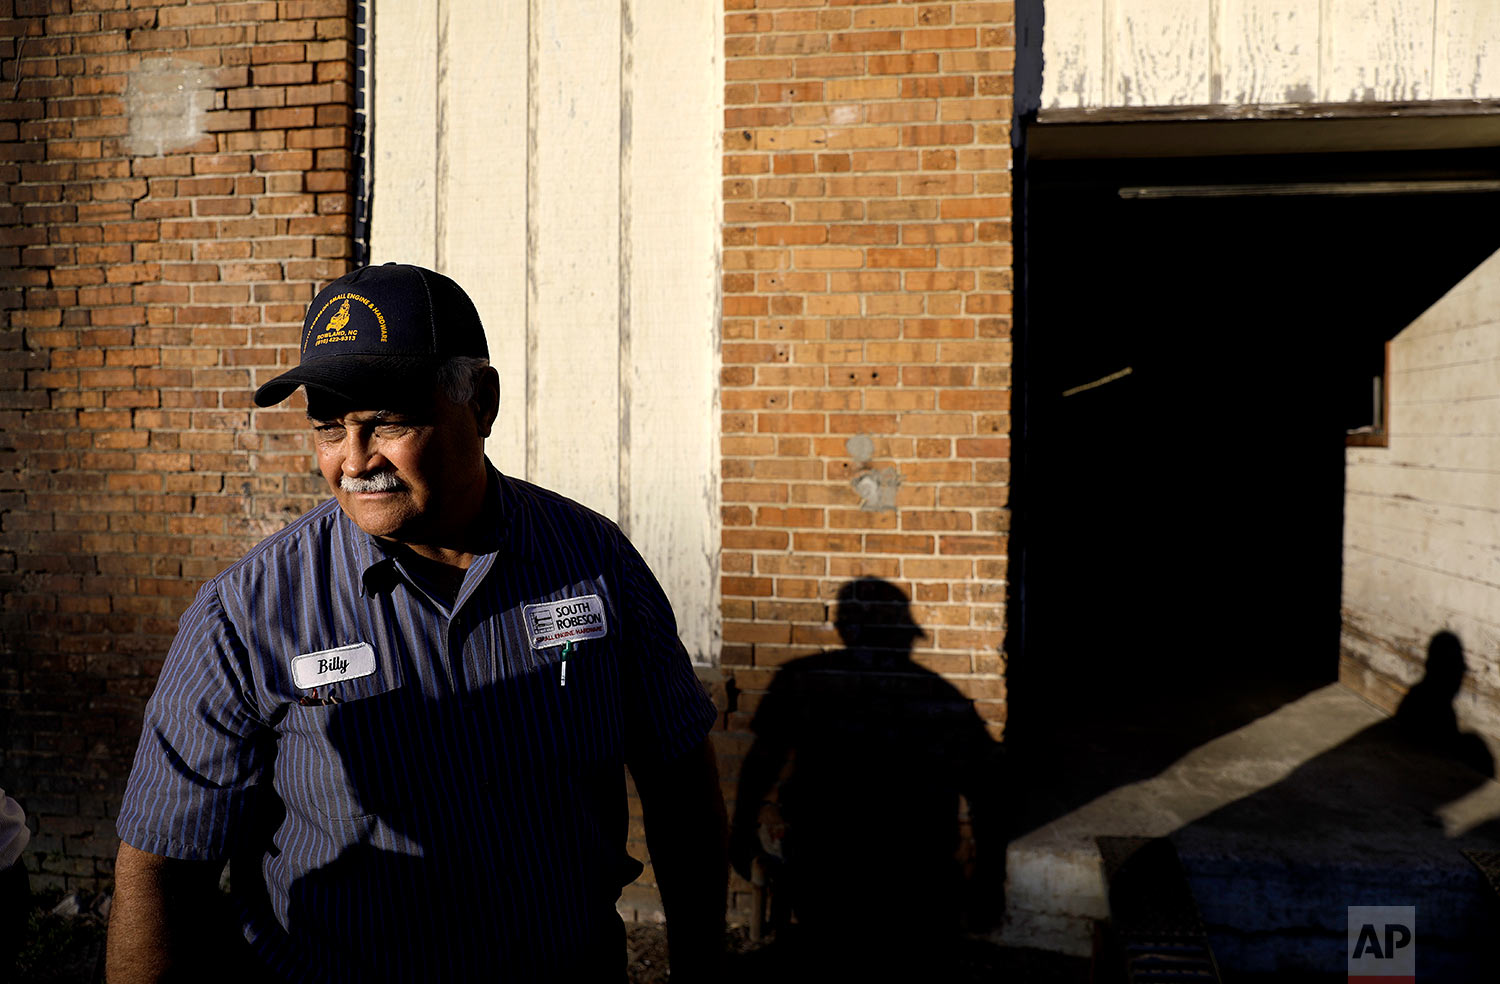 """Billy Hunt, a Native American and a Marine, stands outside his small engine repair shop in Rowland, N.C., Thursday, Oct. 26, 2017. Hunt was hurt, because he thinks the cheerleaders who knelt during the national anthem failed to consider people like him - people who served their country and see the flag as a symbol of that service, of loved ones and limbs lost to war. It seemed to him, like many others here, that they'd chosen a side, without imagining life on the other one. """"I'd like to see it back to people start feeling for each other again,"""" he said, """"instead of - 'it's my idea, it's great, if it's your idea, it sucks.'"""" (AP Photo/David Goldman)"""